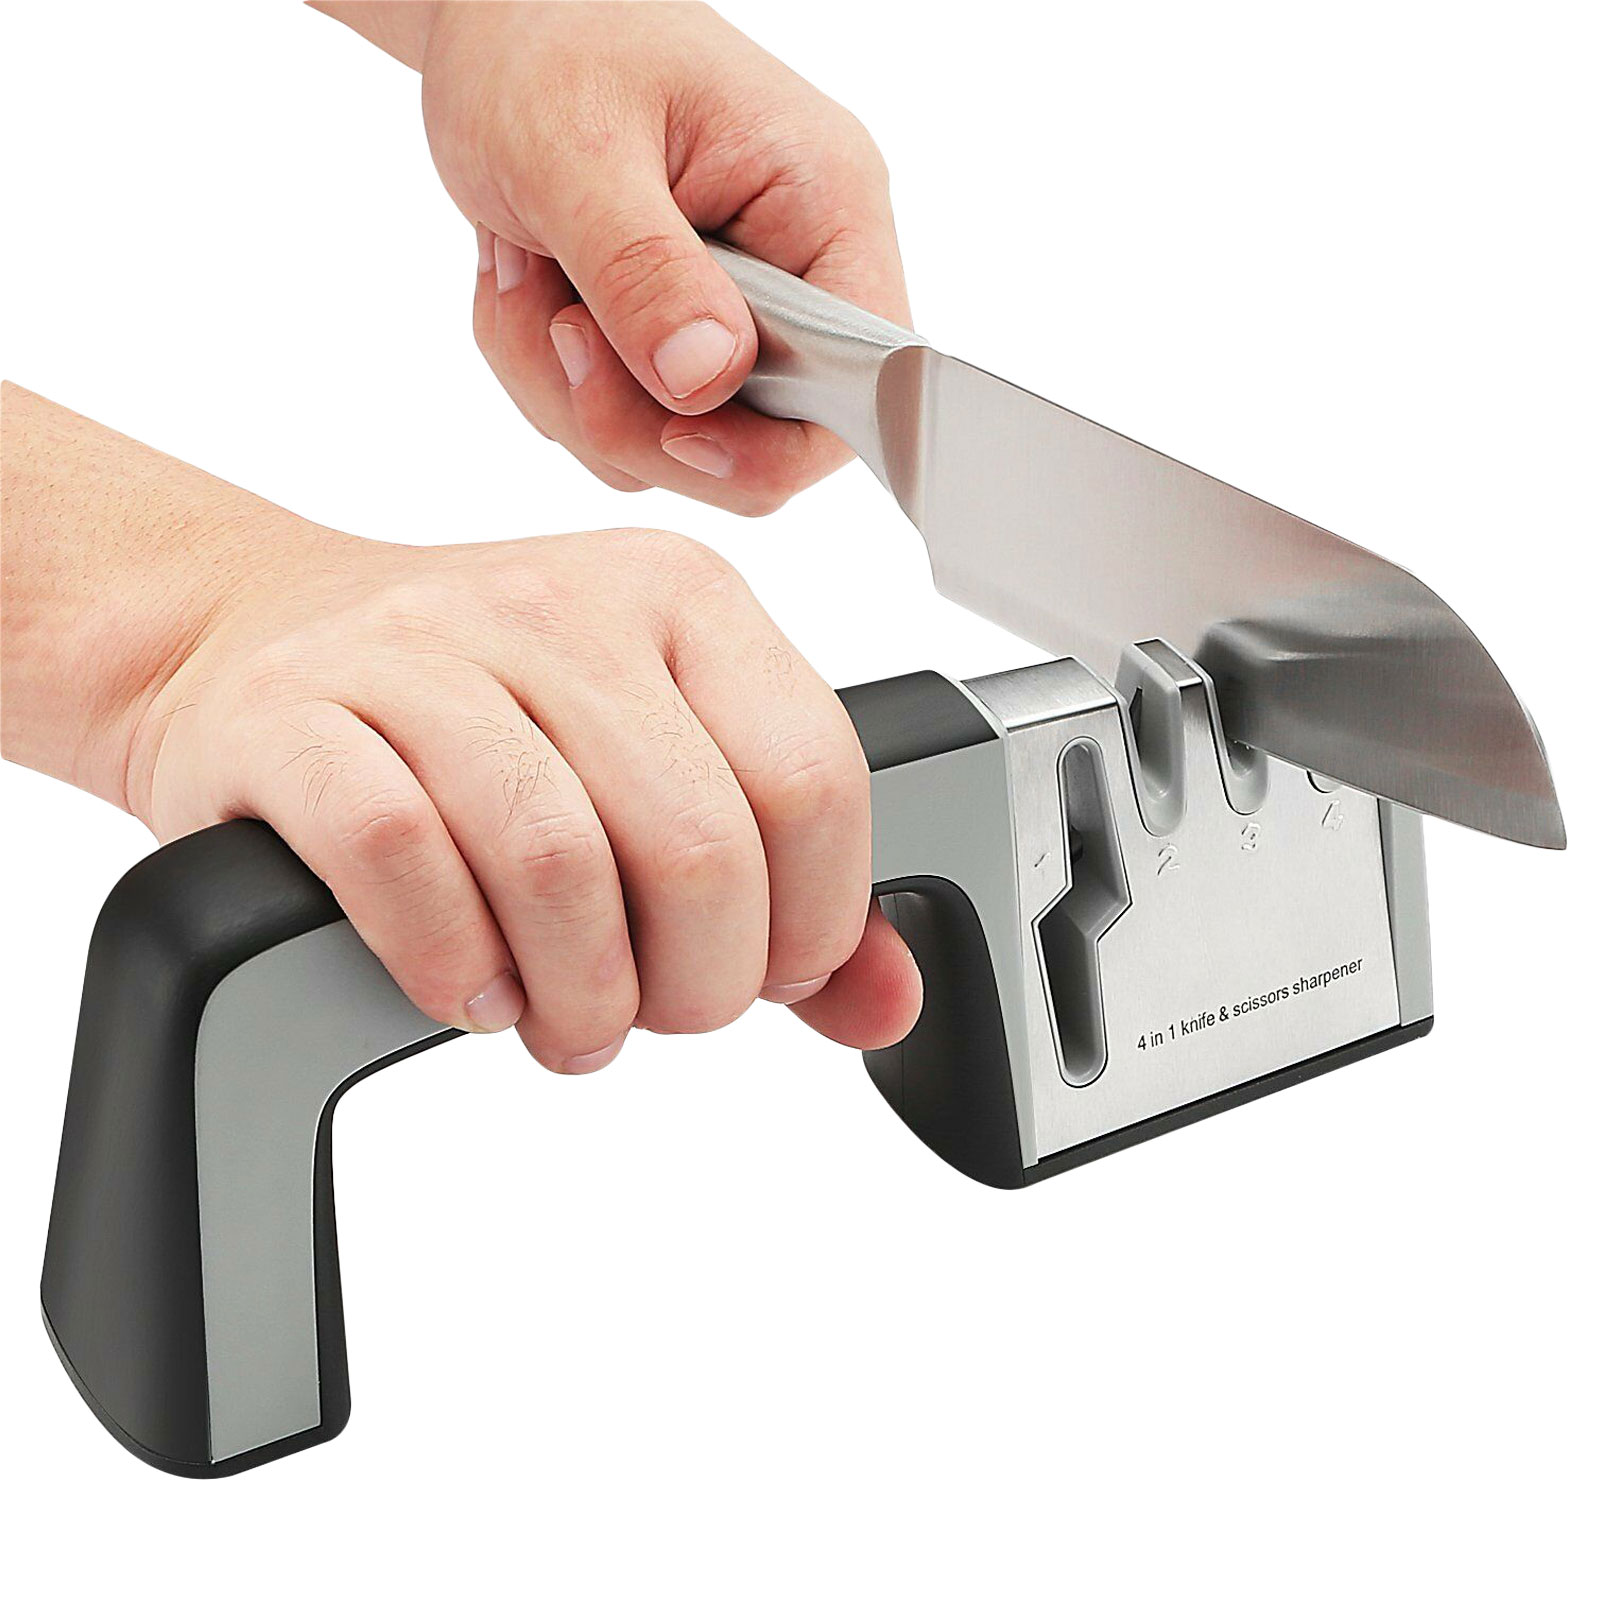 TSV Kitchen Knife Sharpener - 4-Stage Knife Sharpening Tool Helps Repair, Restore and Polish Blades, Easy & Safety